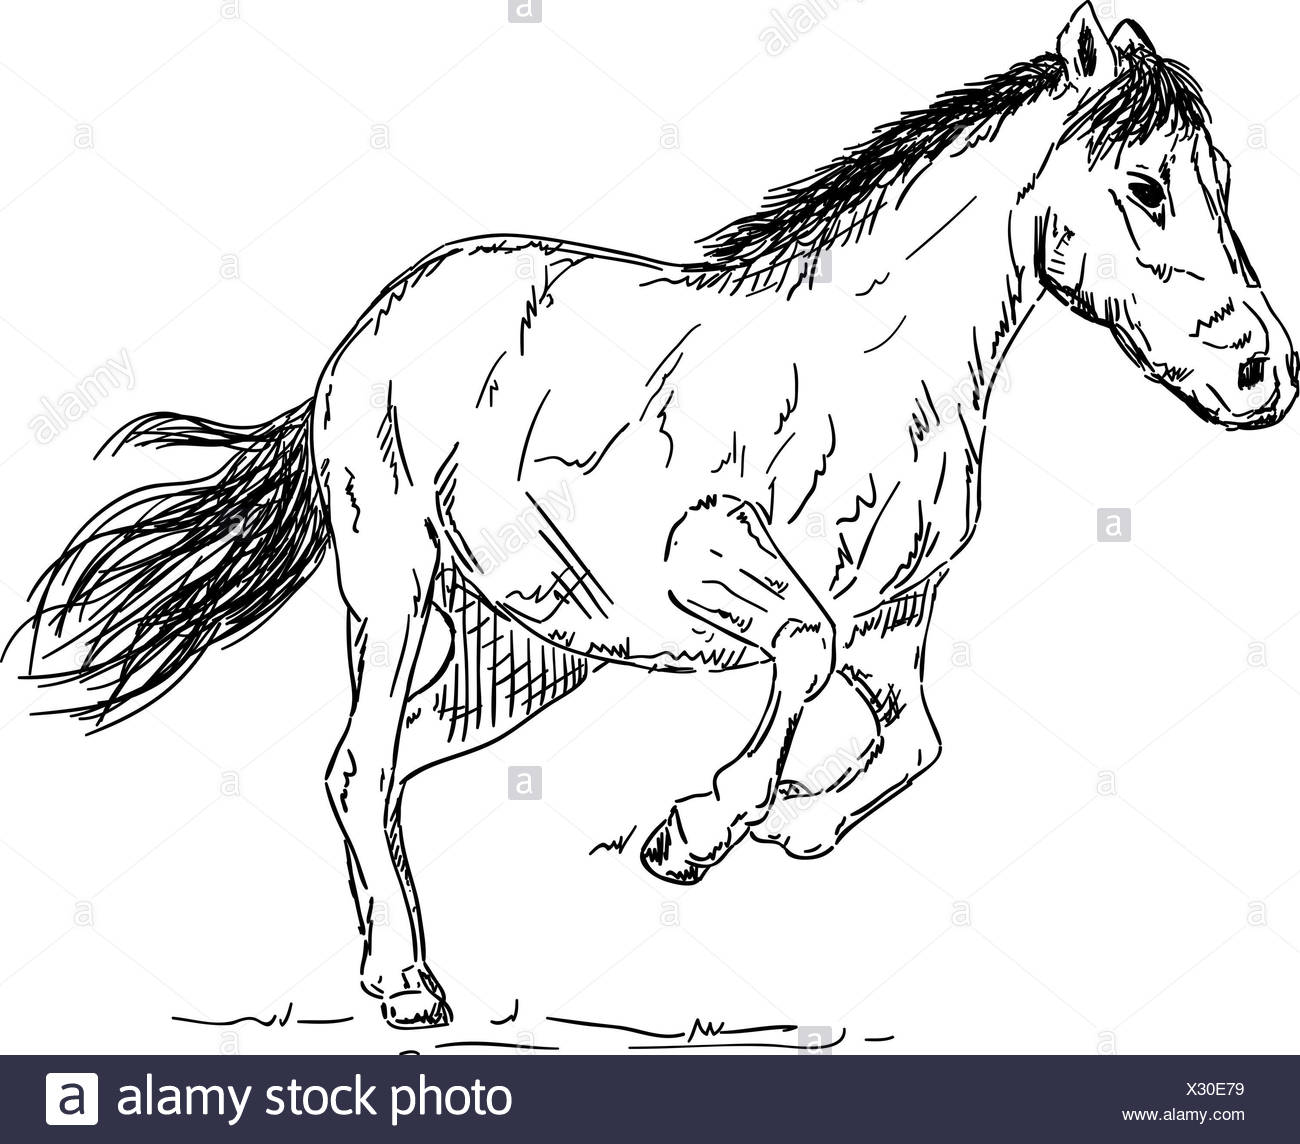 Isolated Colour Animal Illustration Paint Draw Isolated Colour Horse Stock Photo Alamy